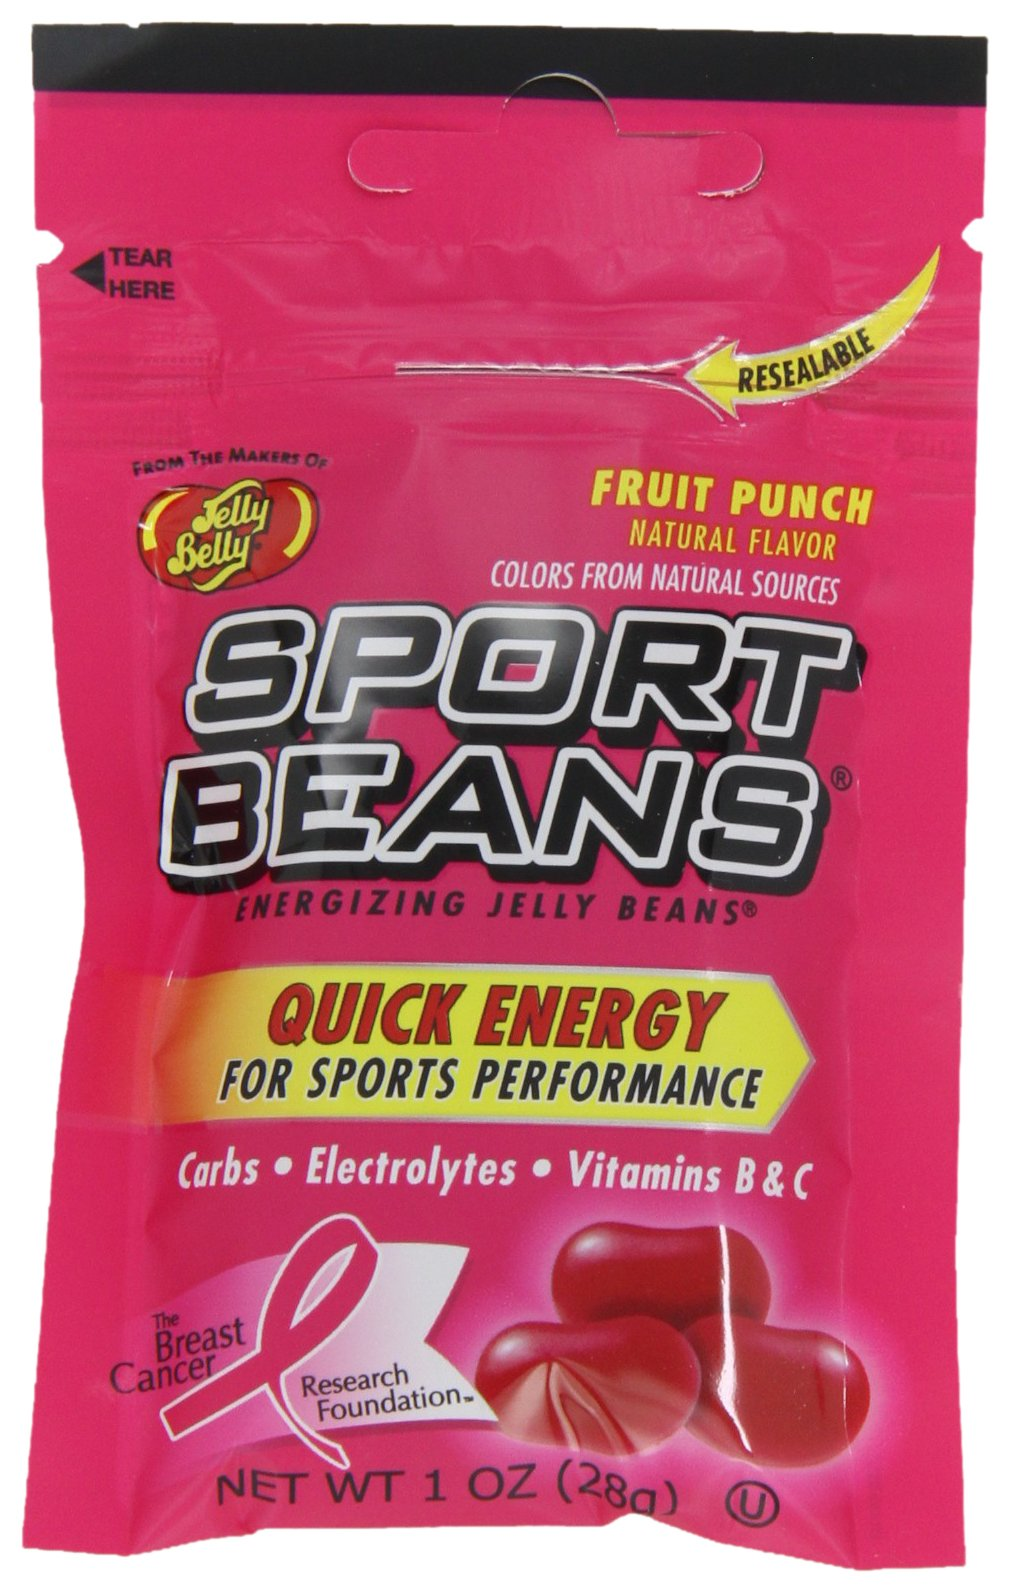 Jelly Belly Sport Beans, Fruit Punch Energizing Jelly Beans, 1-Ounce Bags (Pack of 24) by Jelly Belly